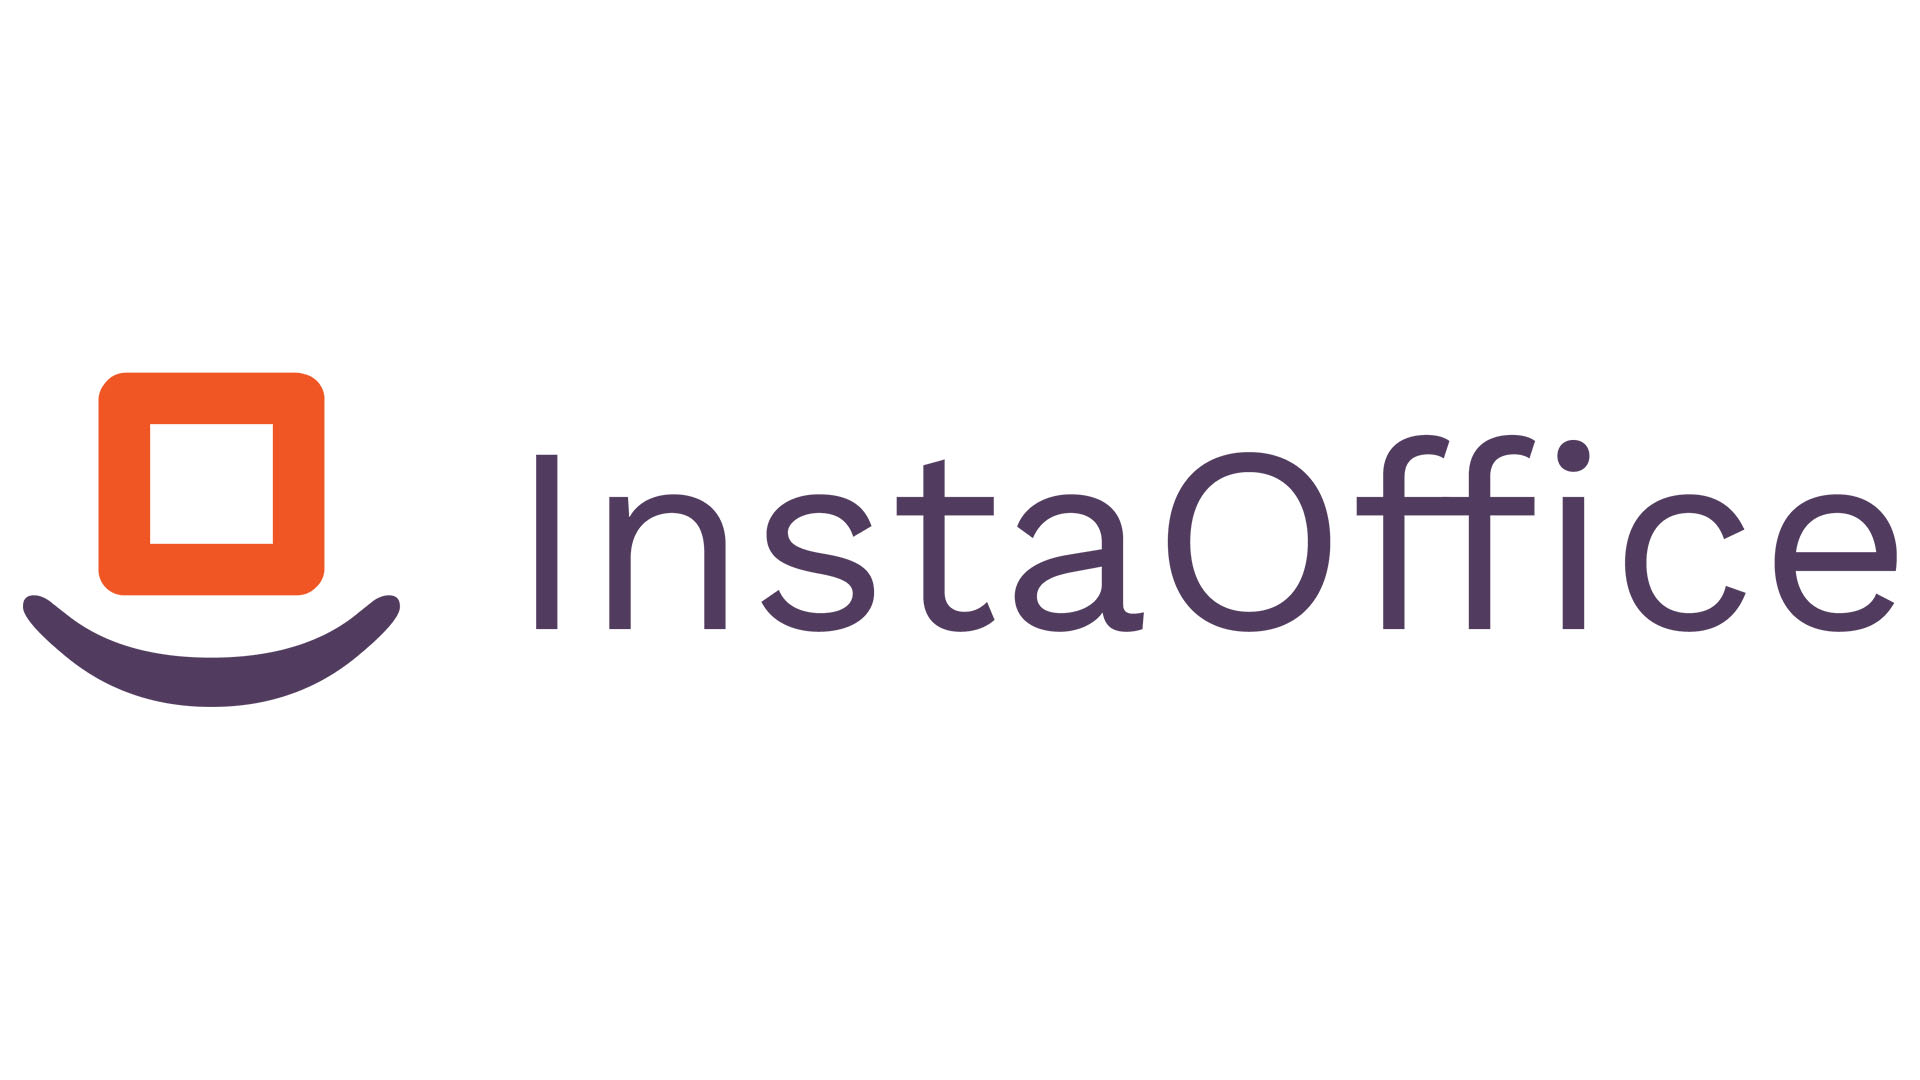 Instaoffice